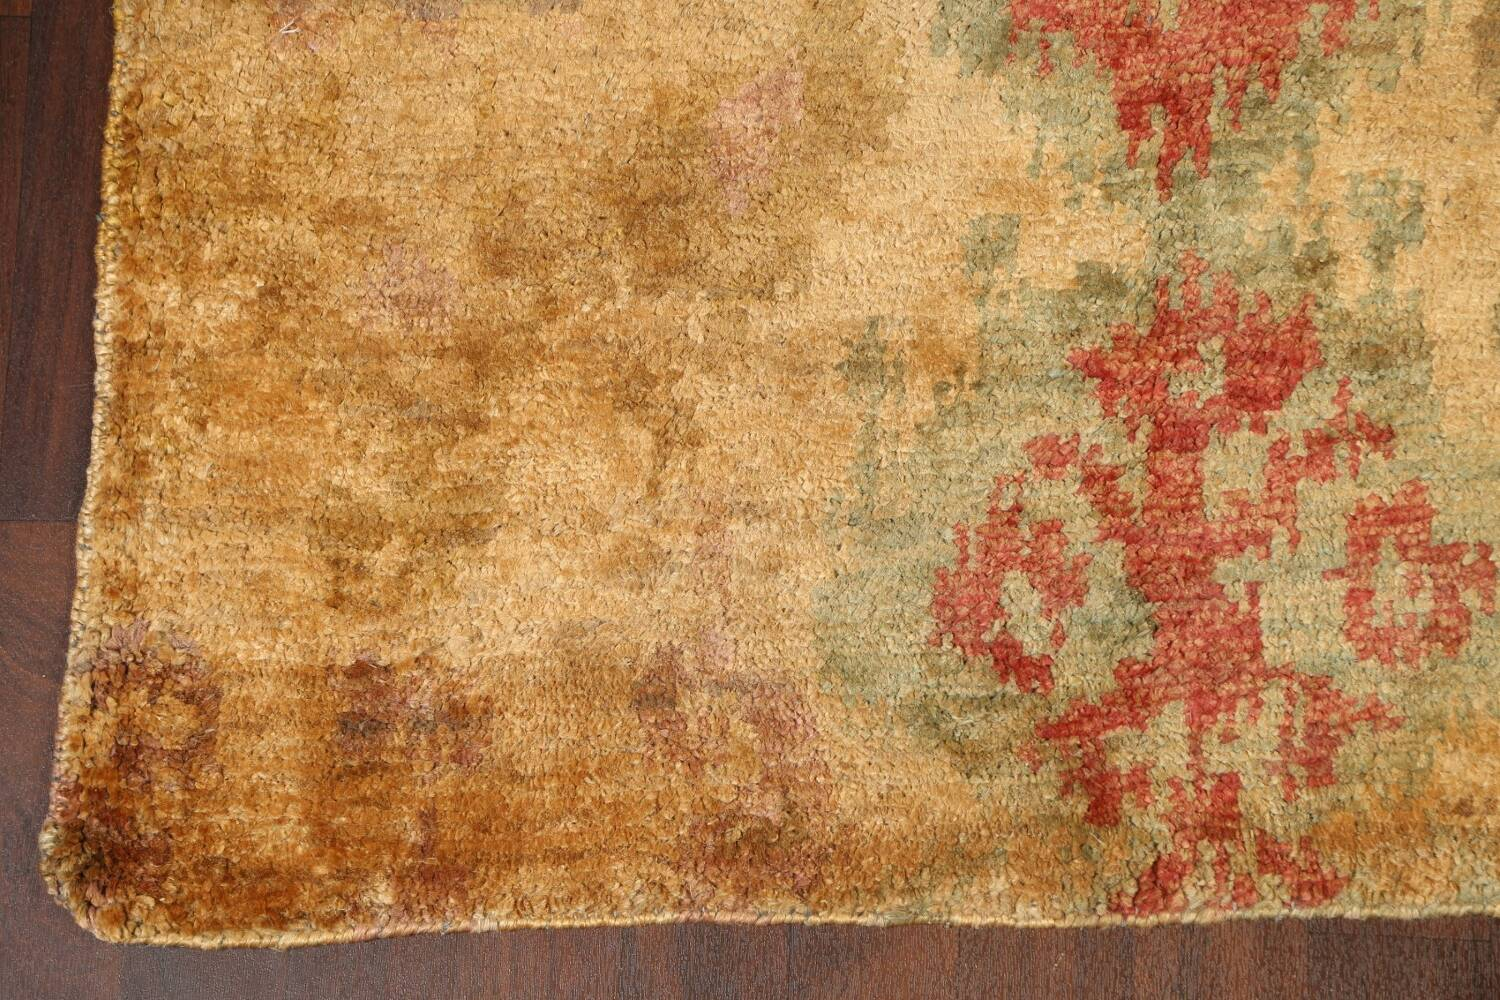 Abstract Oriental Area Rug 6x8 image 6